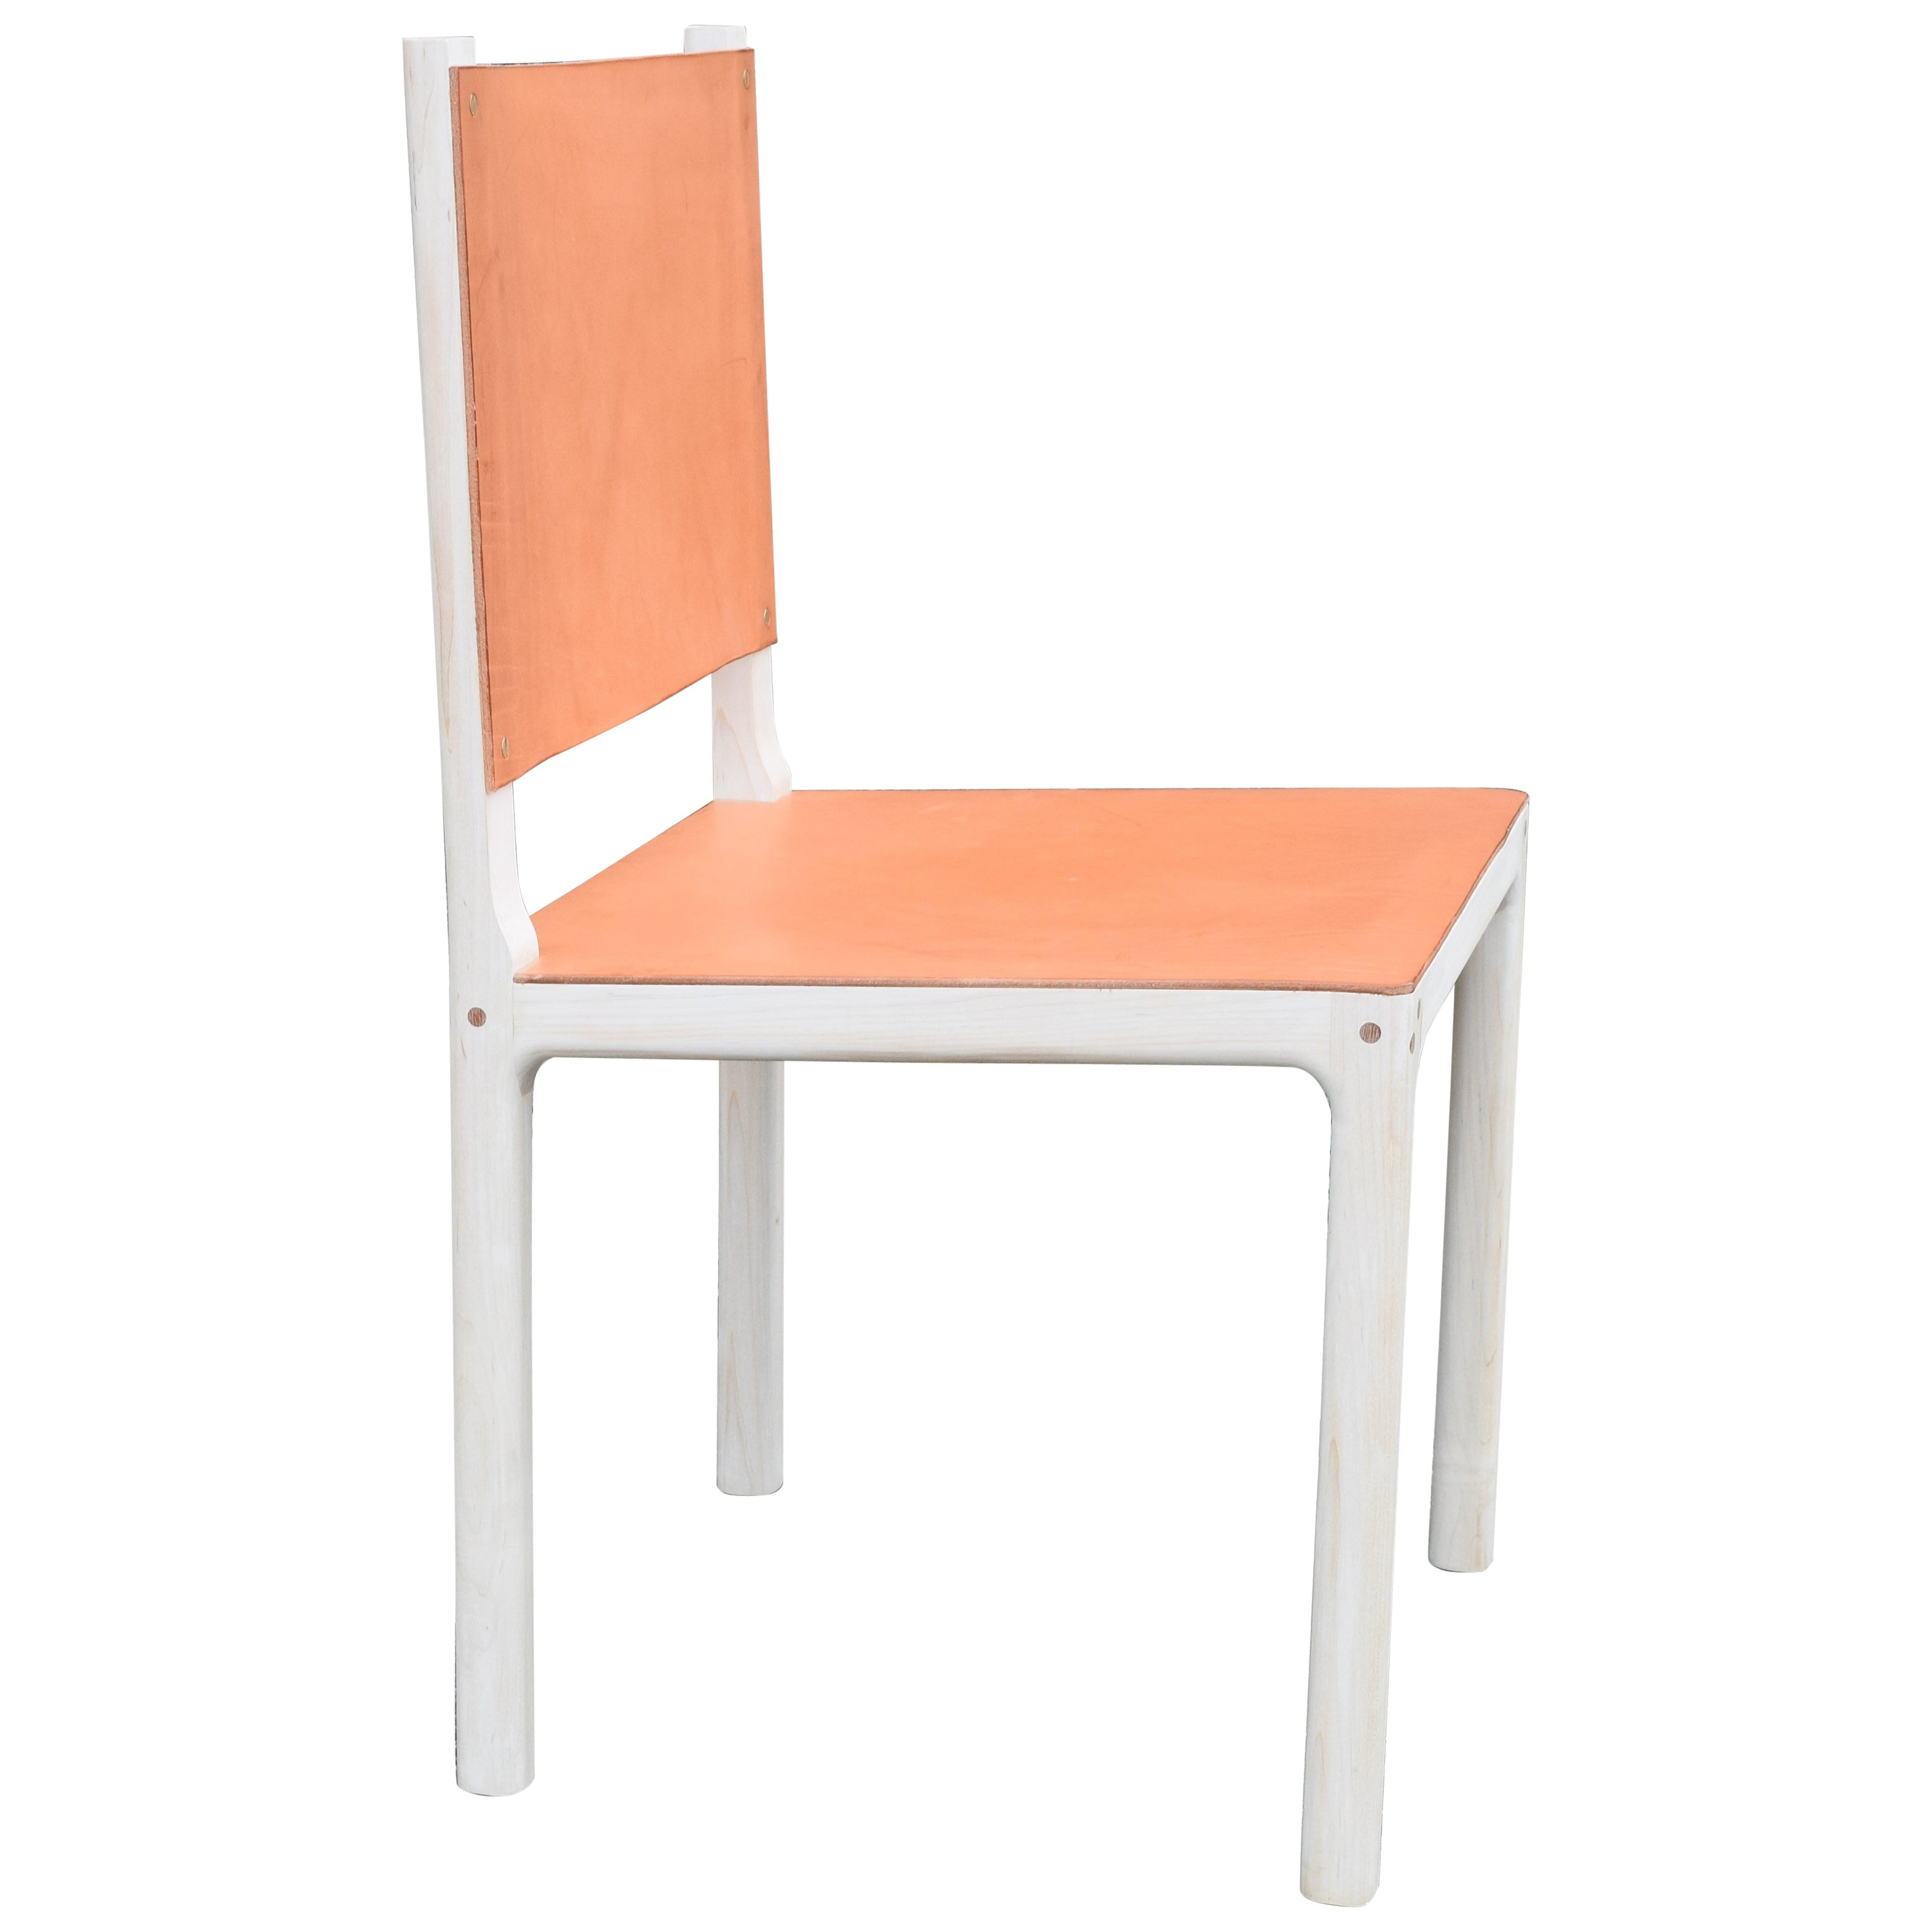 Bleached Maple and Leather Modern Dining Chair